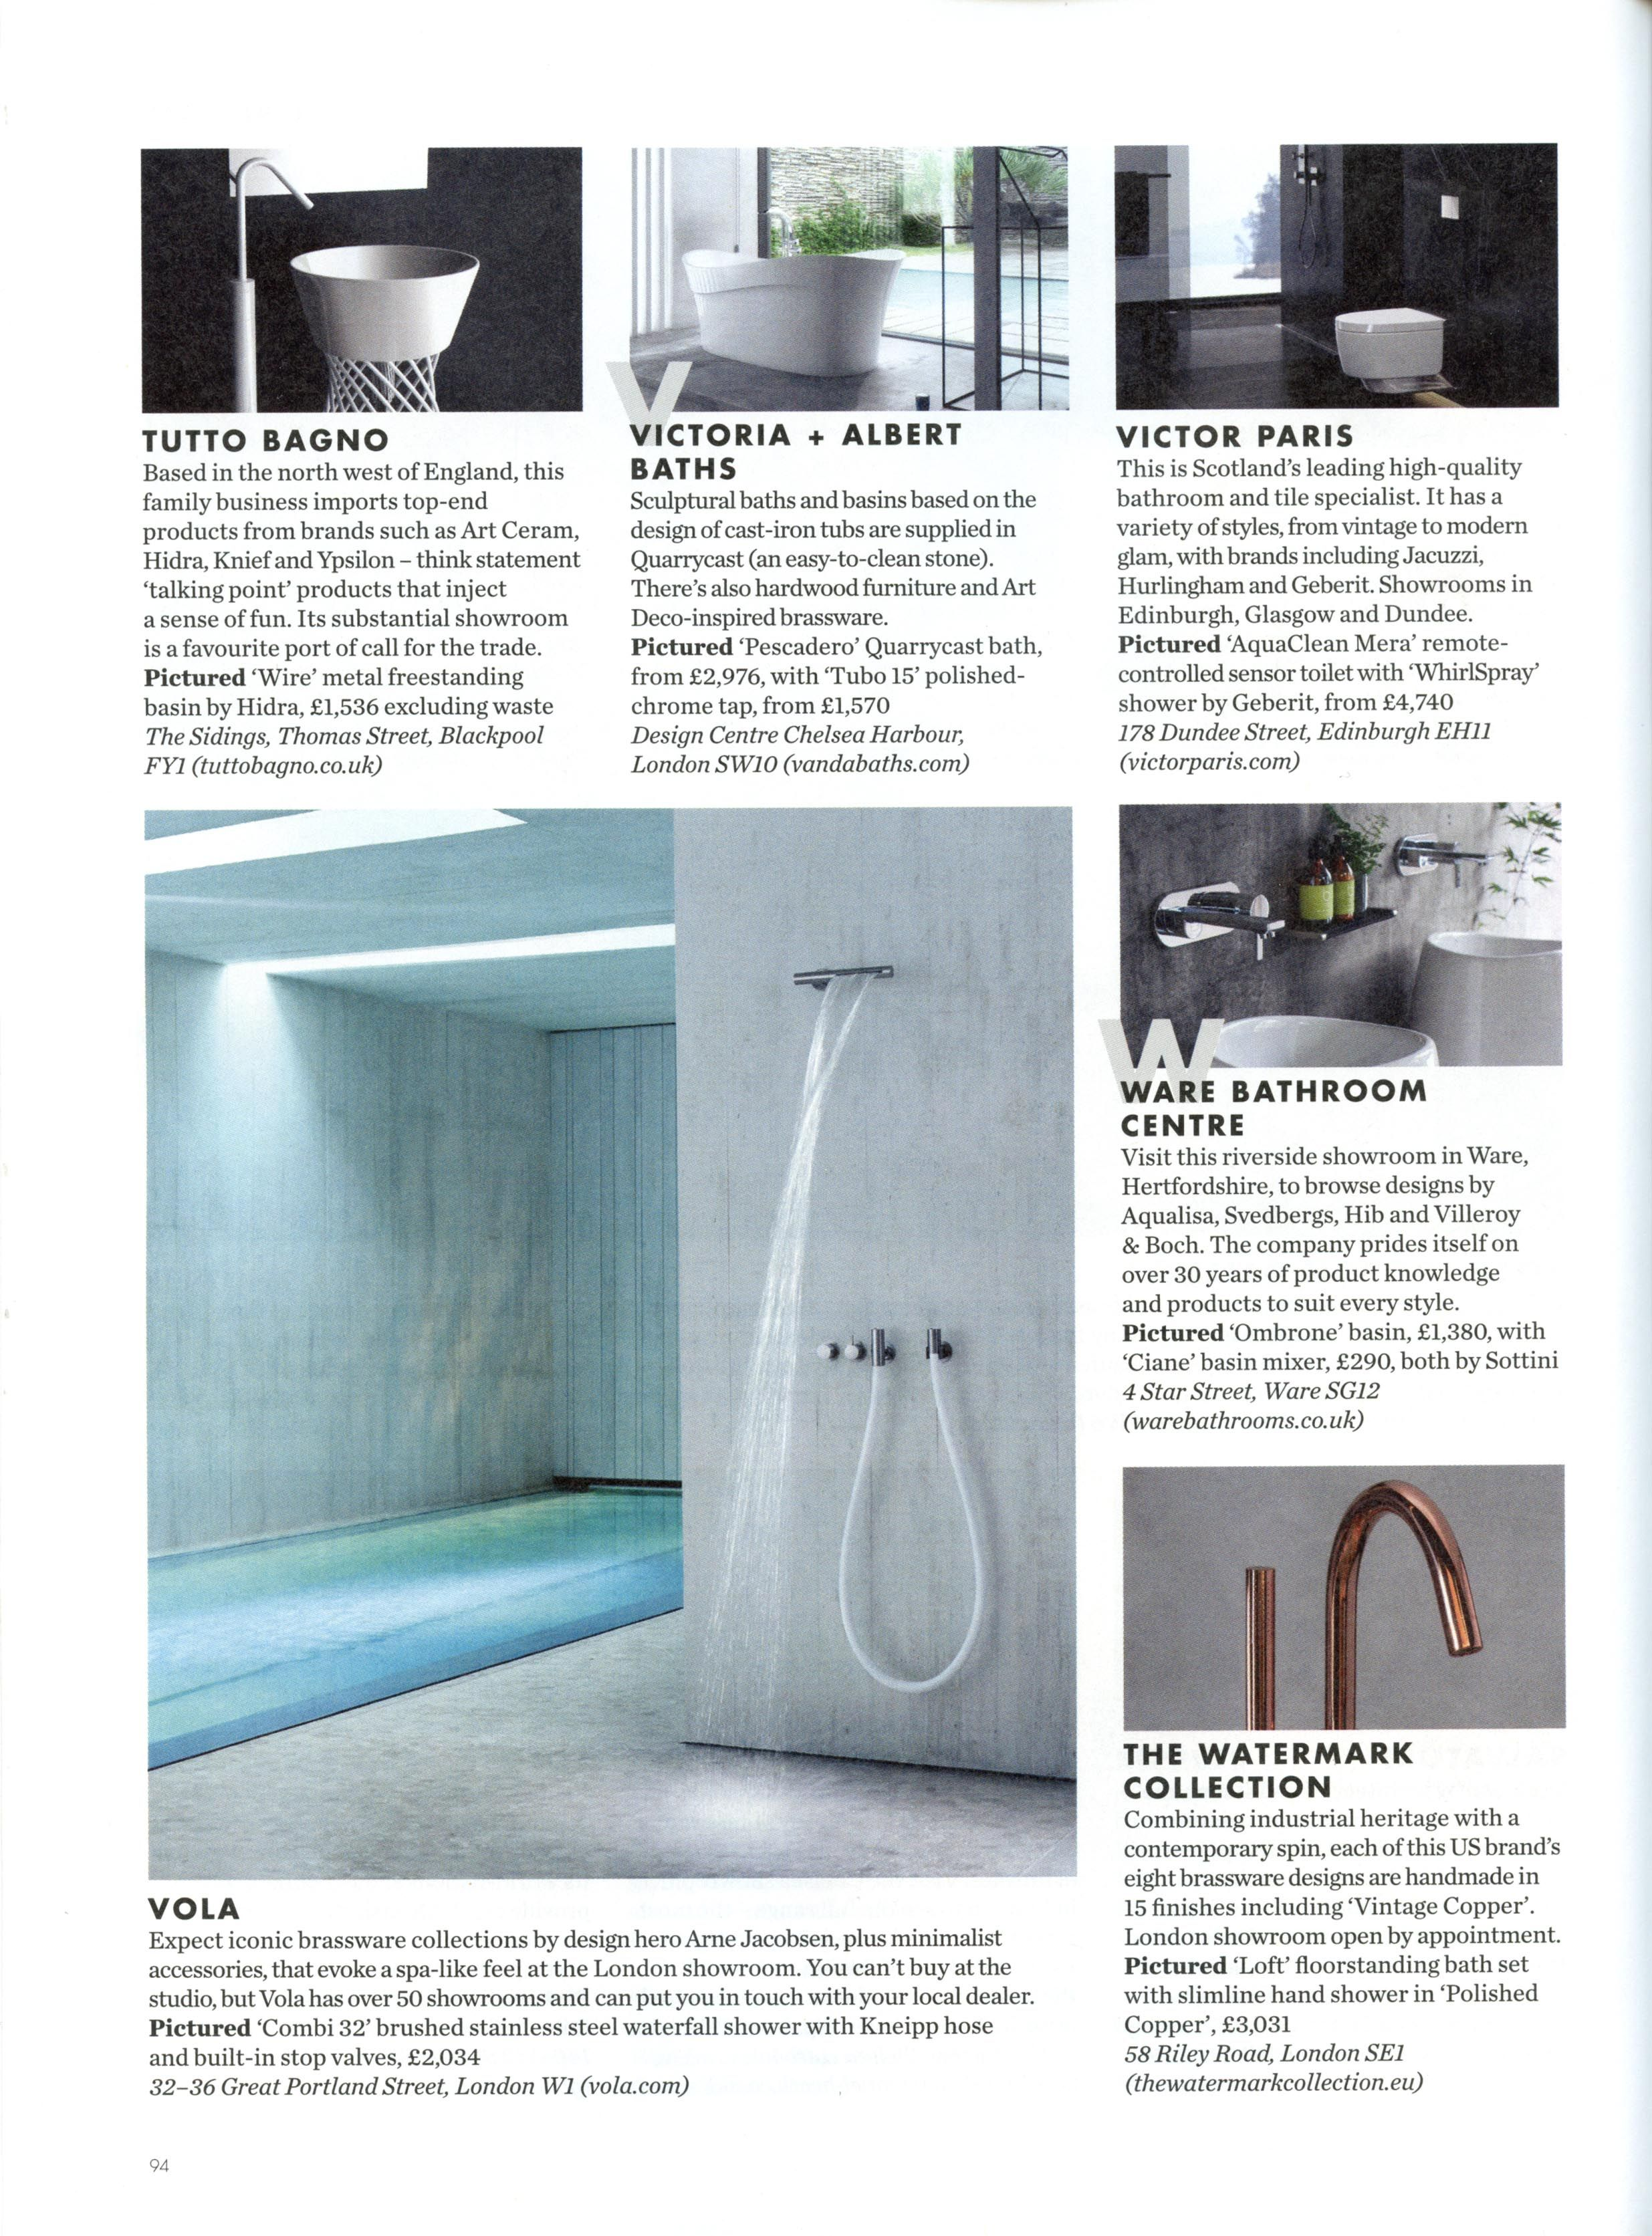 Bagno Design Edinburgh Pin By Arc Pr On The Watermark Collection In The Press Bath